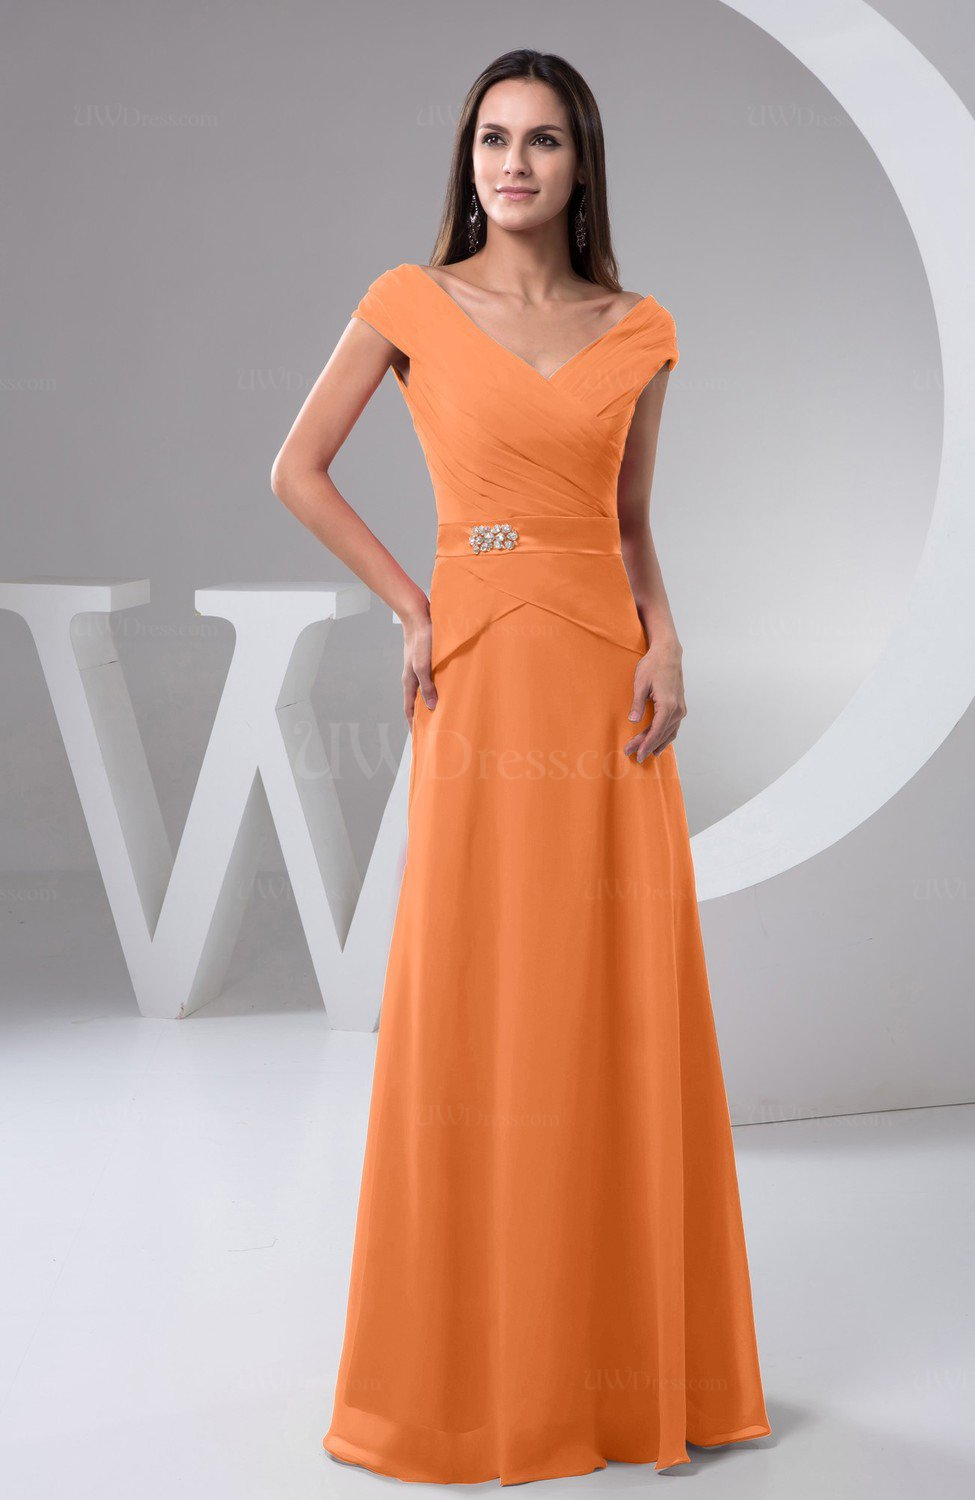 Mango Chiffon Bridesmaid Dress With Sleeves Short Sleeve Outdoor Chic Autumn